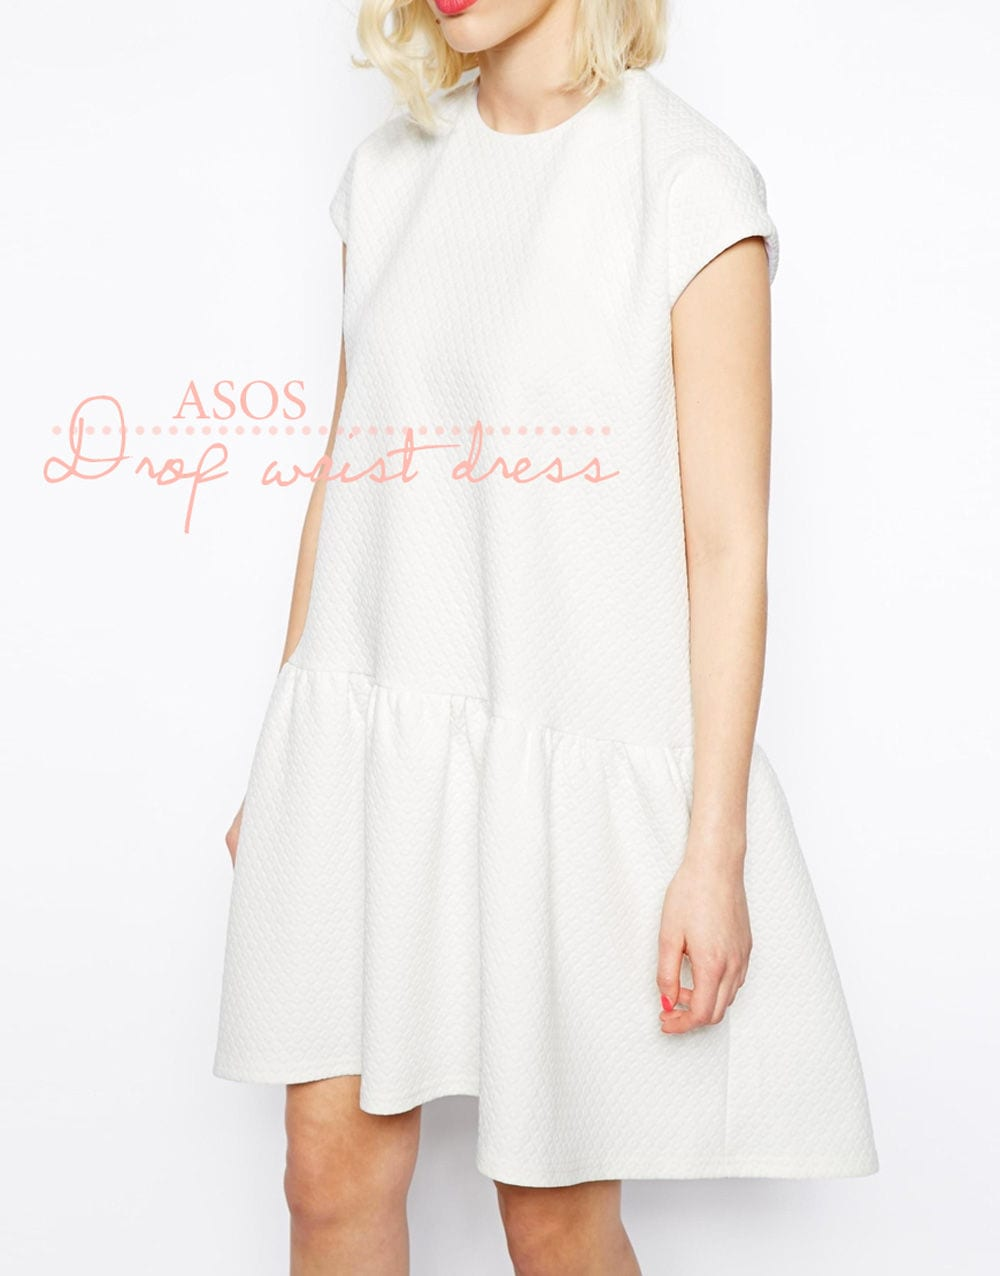 LWD // The perfect little white dress